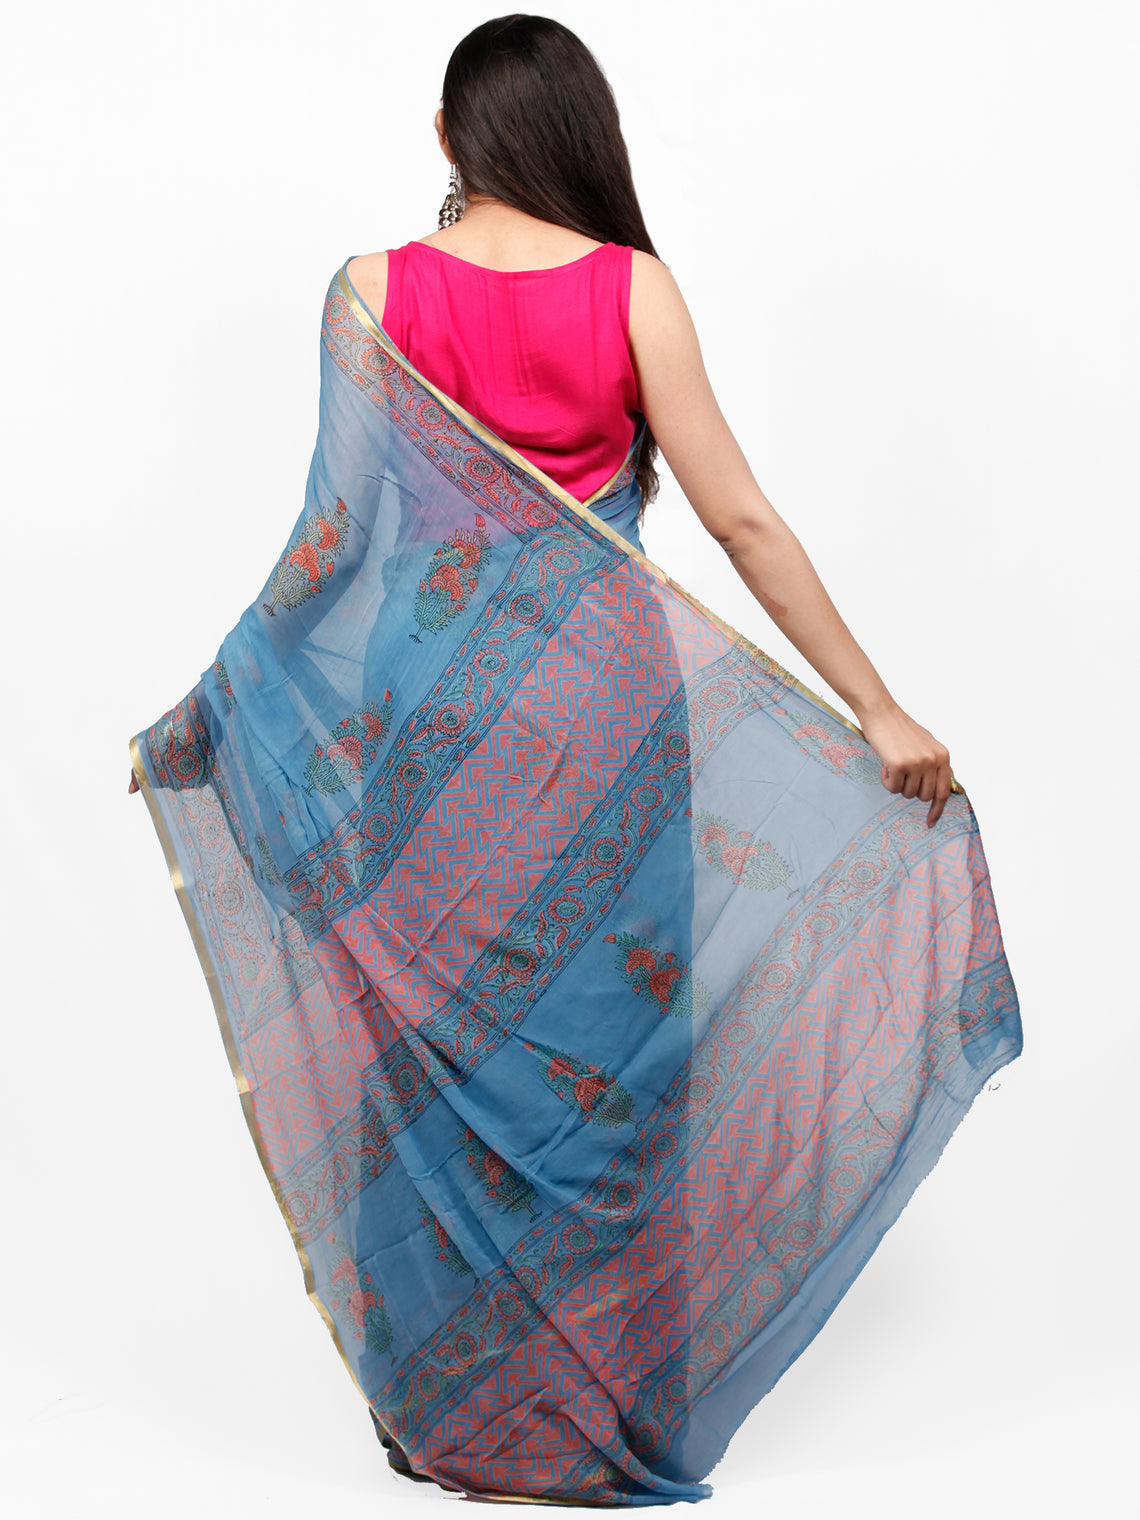 Sky Blue Coral Green Hand Block Printed Chiffon Saree with Zari Border - S031703264